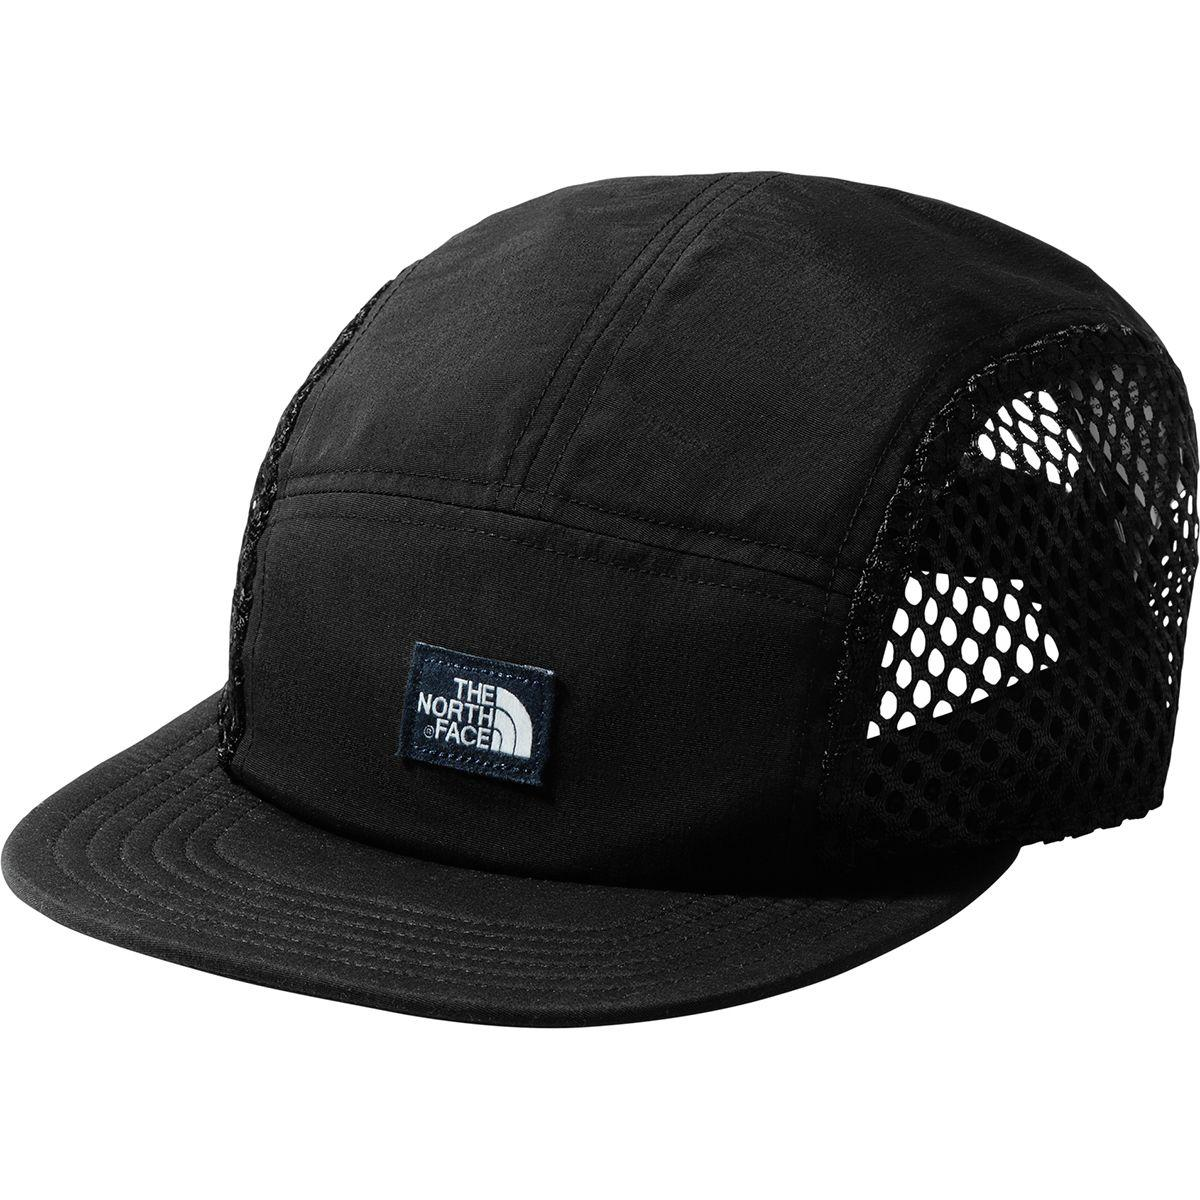 655fe6eb The North Face Class V 5 Panel Hat in Black for Men - Lyst